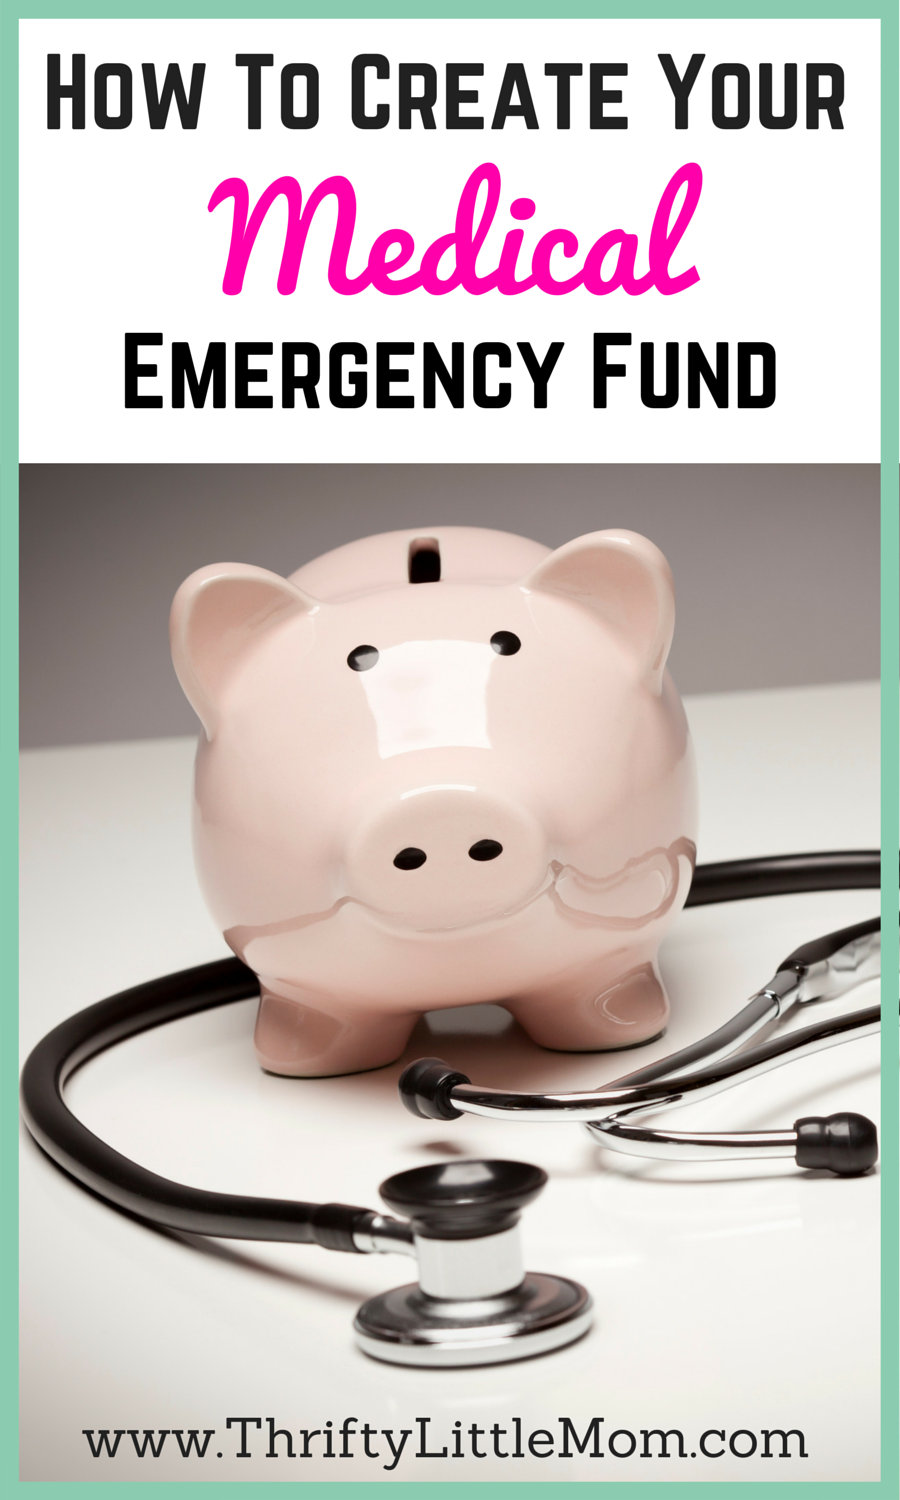 How To Create Your Emergency Medical Fund